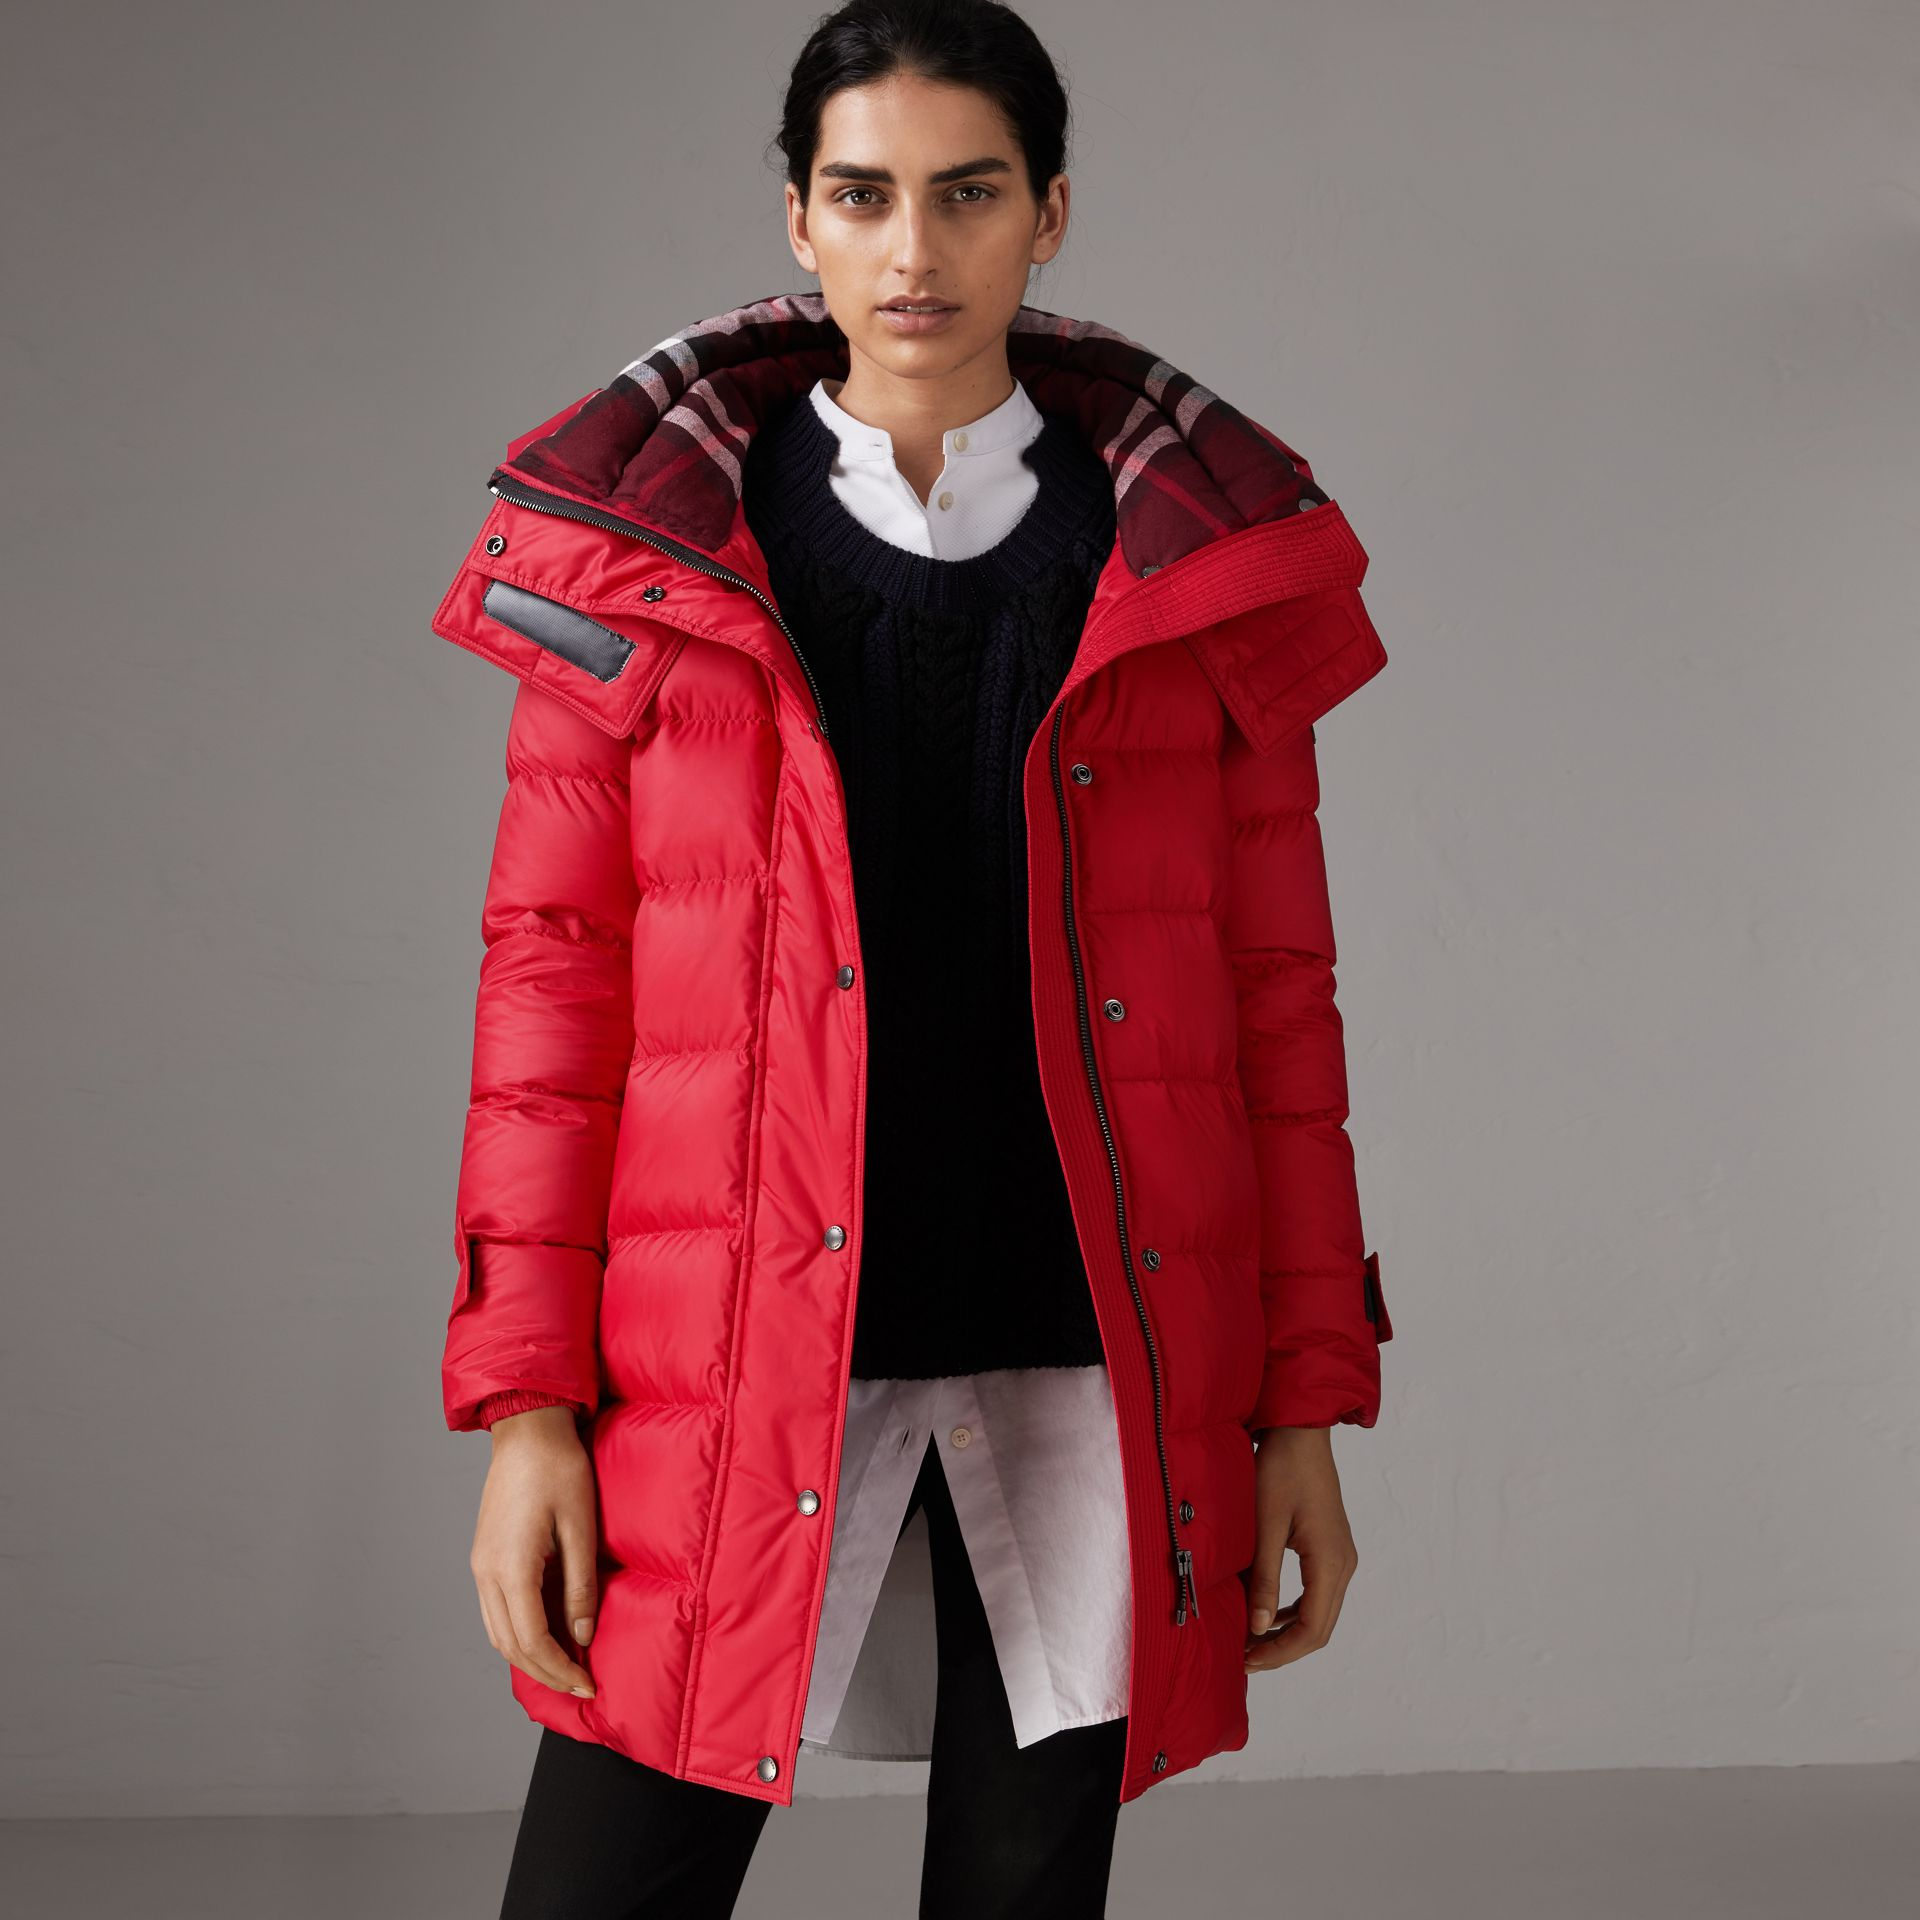 Down-filled Puffer Coat With Detachable Hood in Parade Red - Women | Burberry United Kingdom - gallery image 1